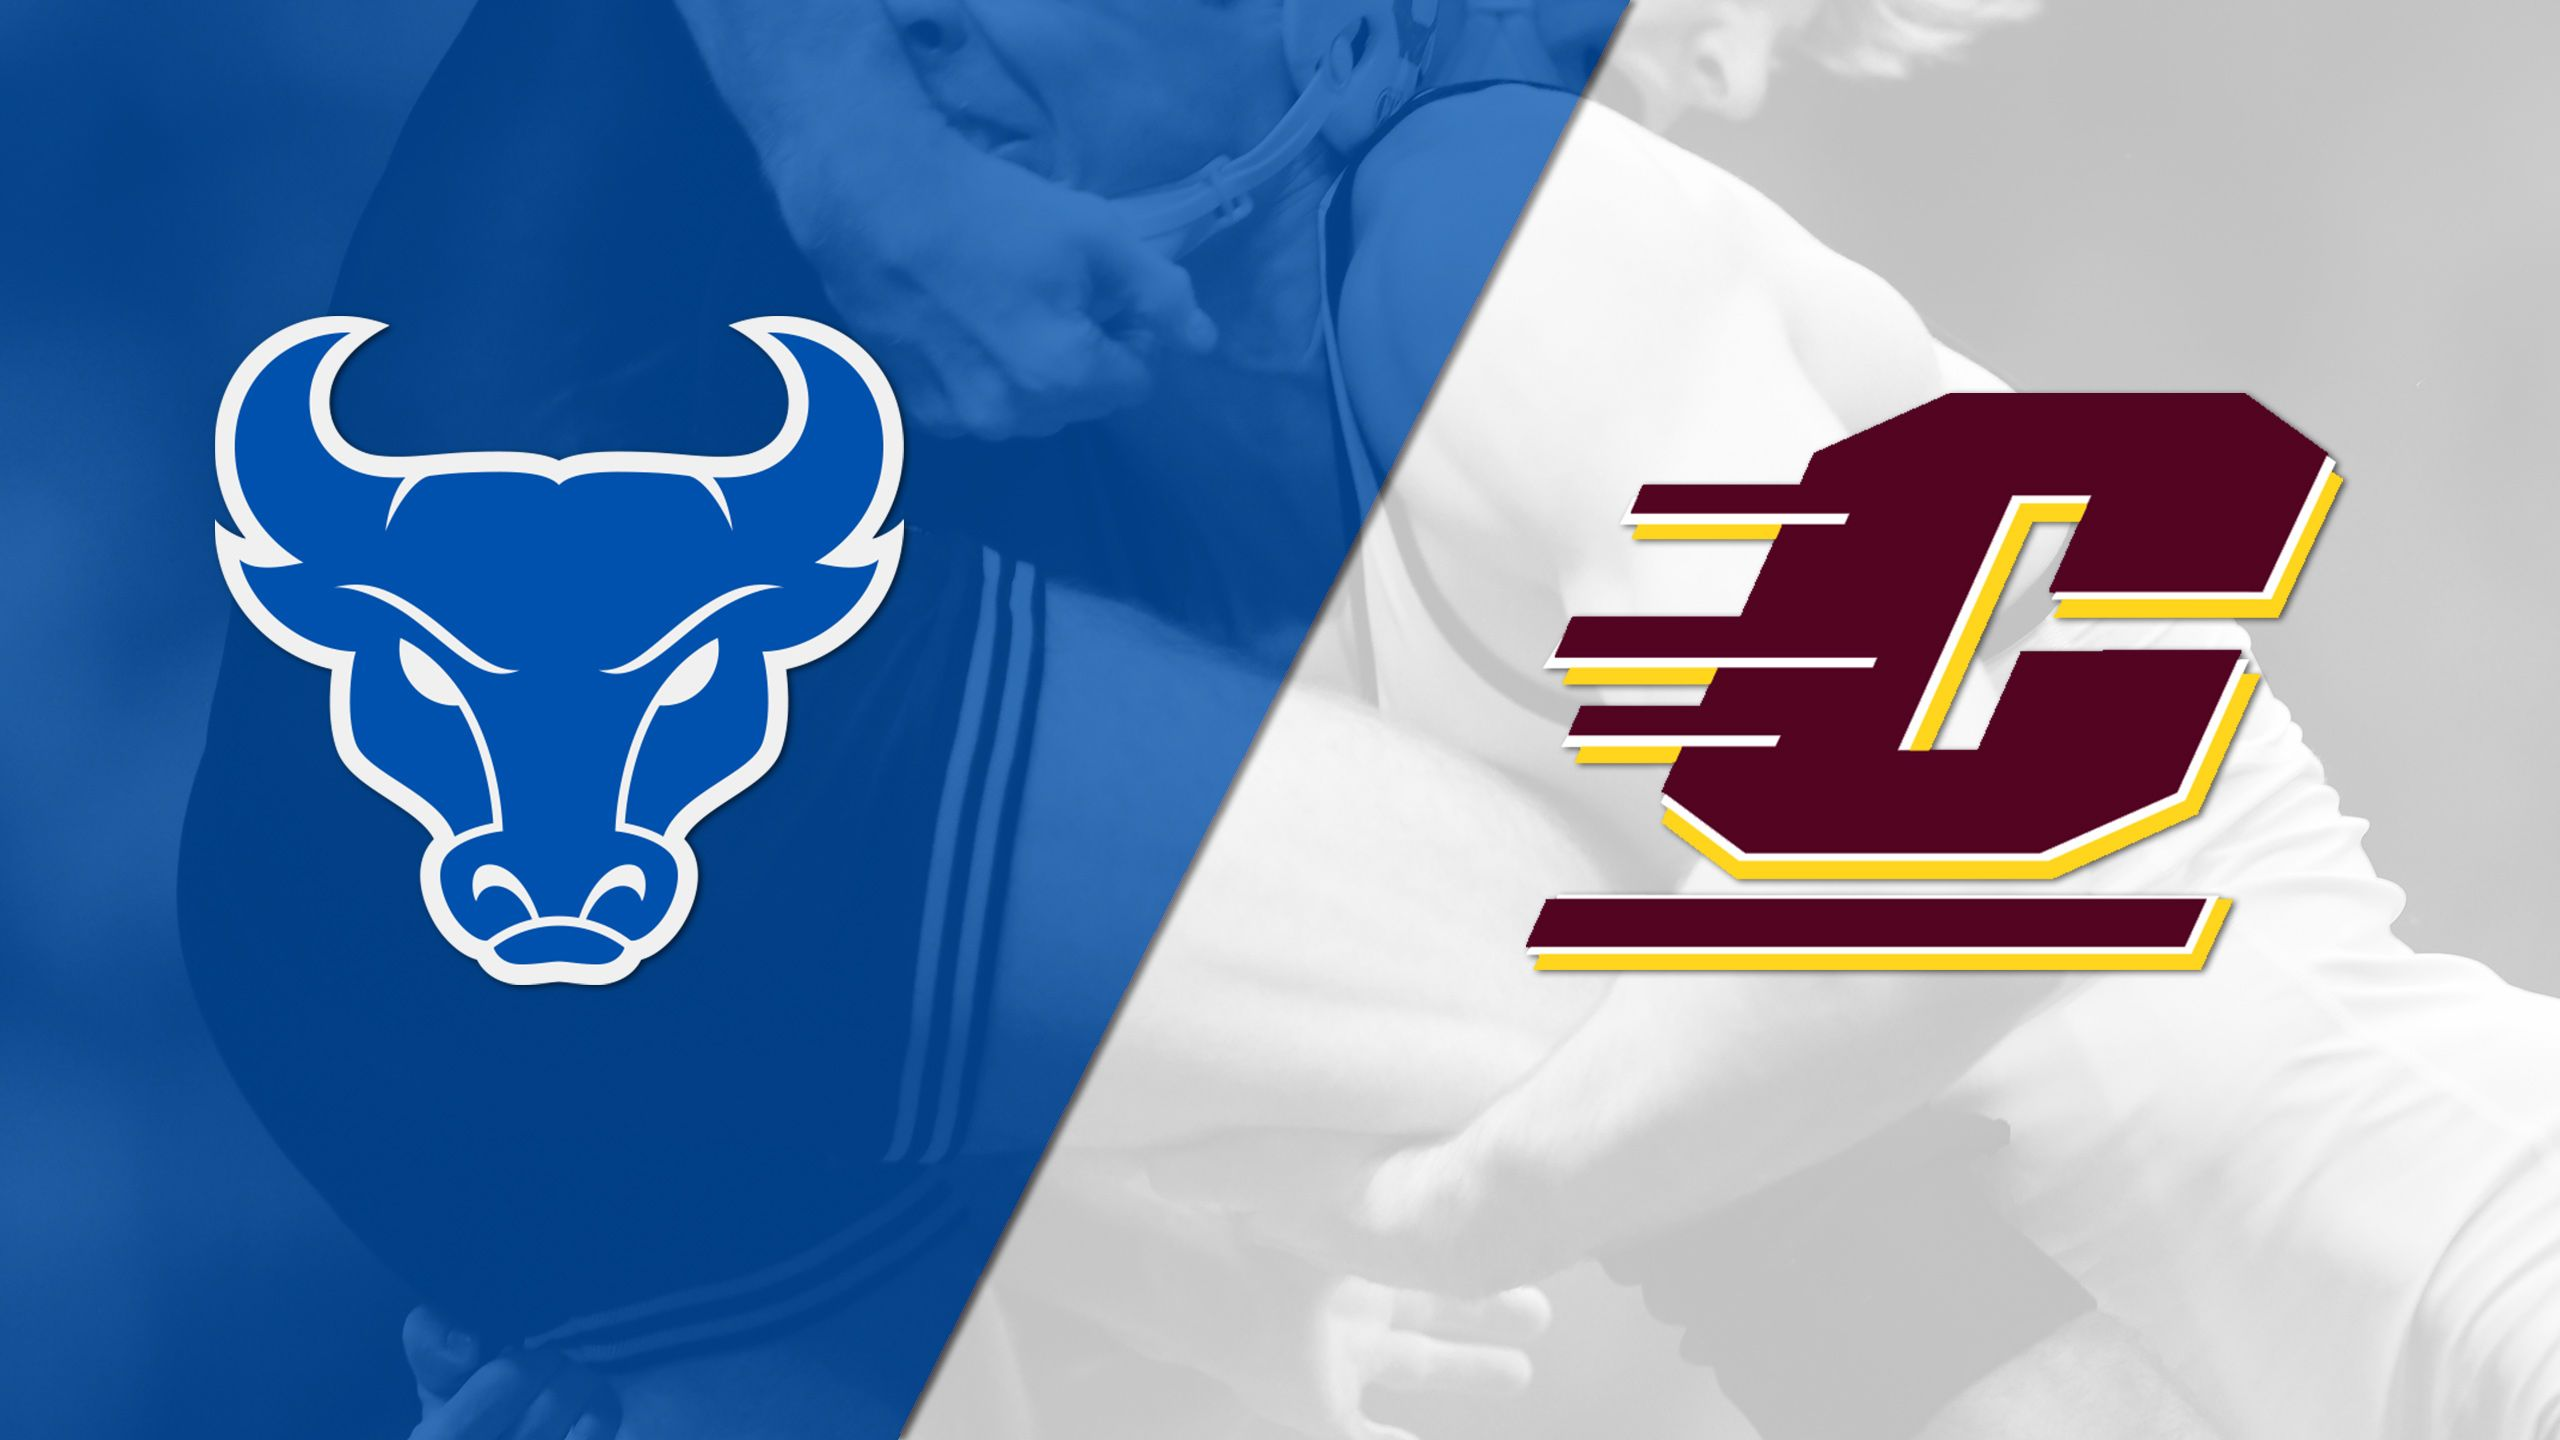 Buffalo vs. Central Michigan (Wrestling)